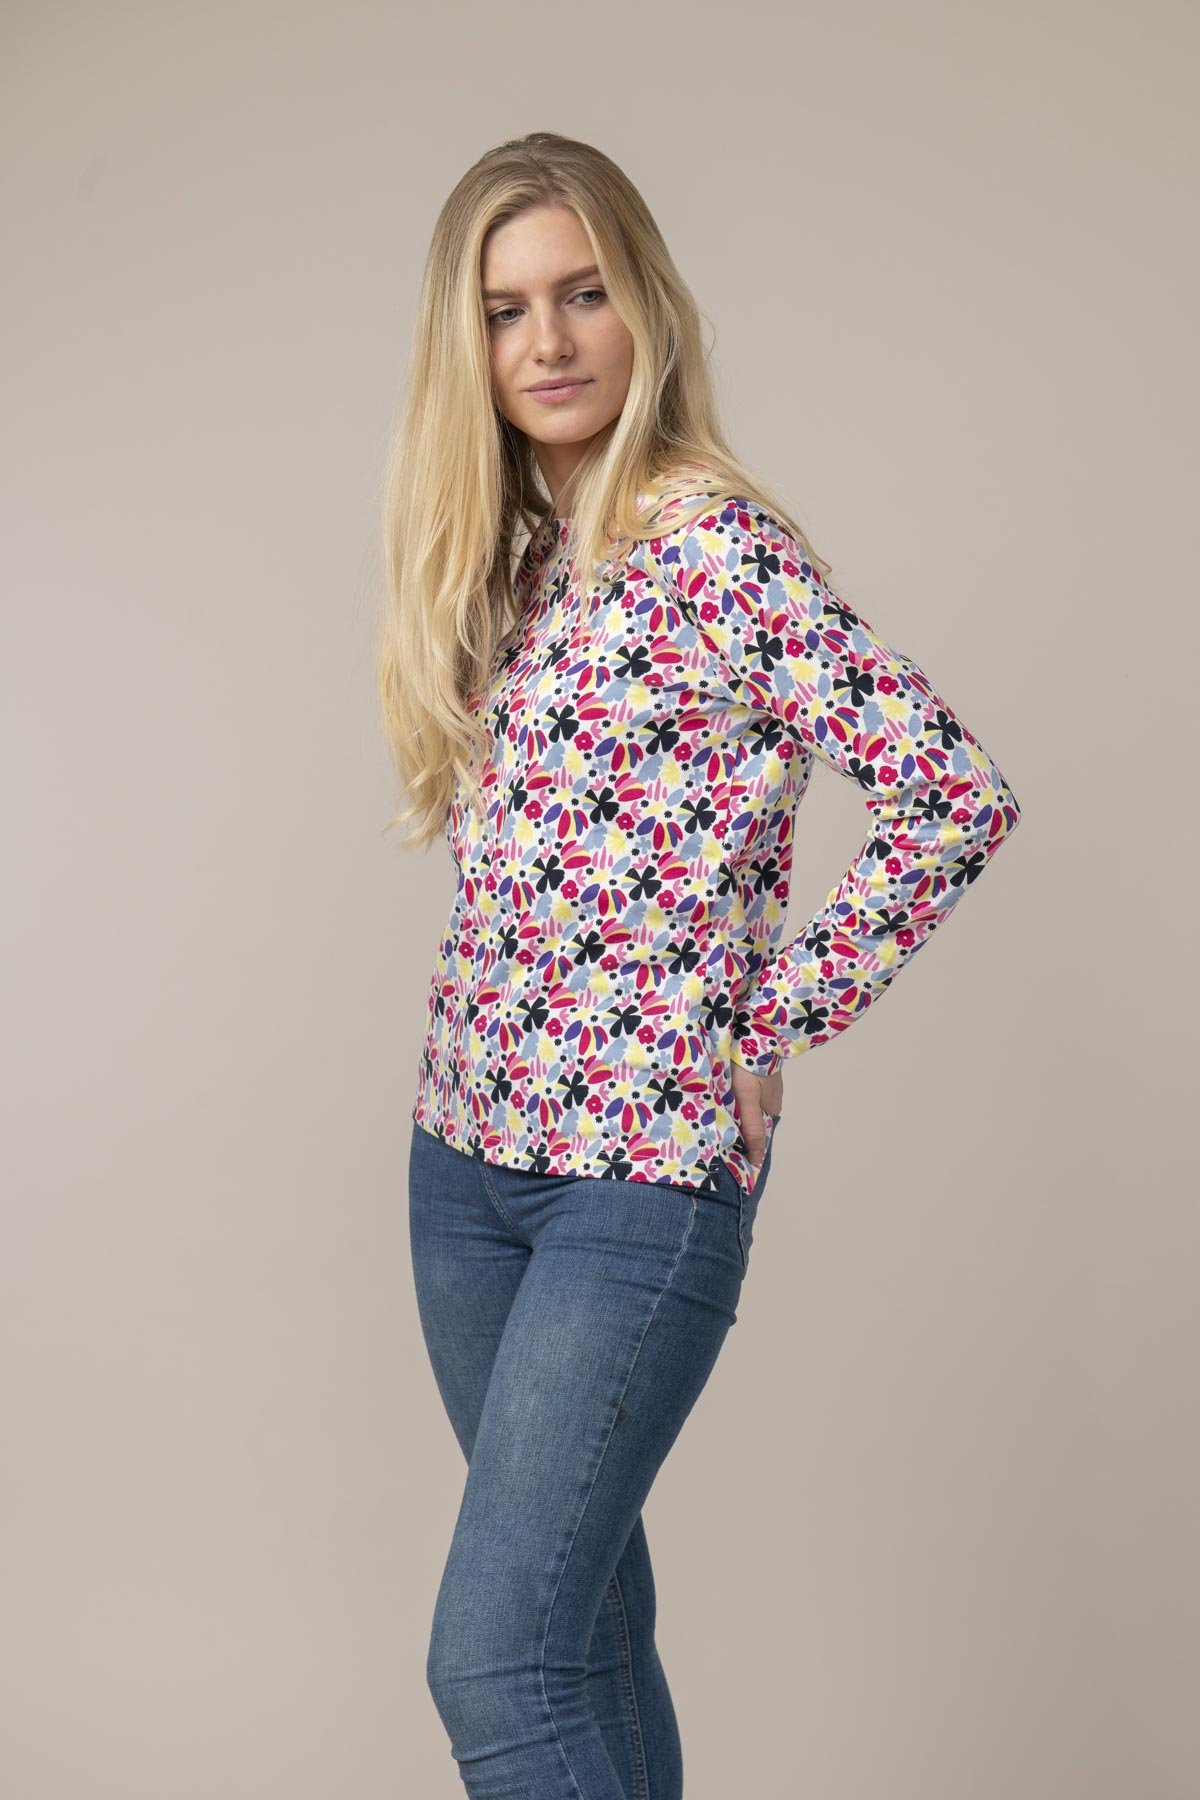 Lighthouse Causeway Breton Top - Abstract Floral